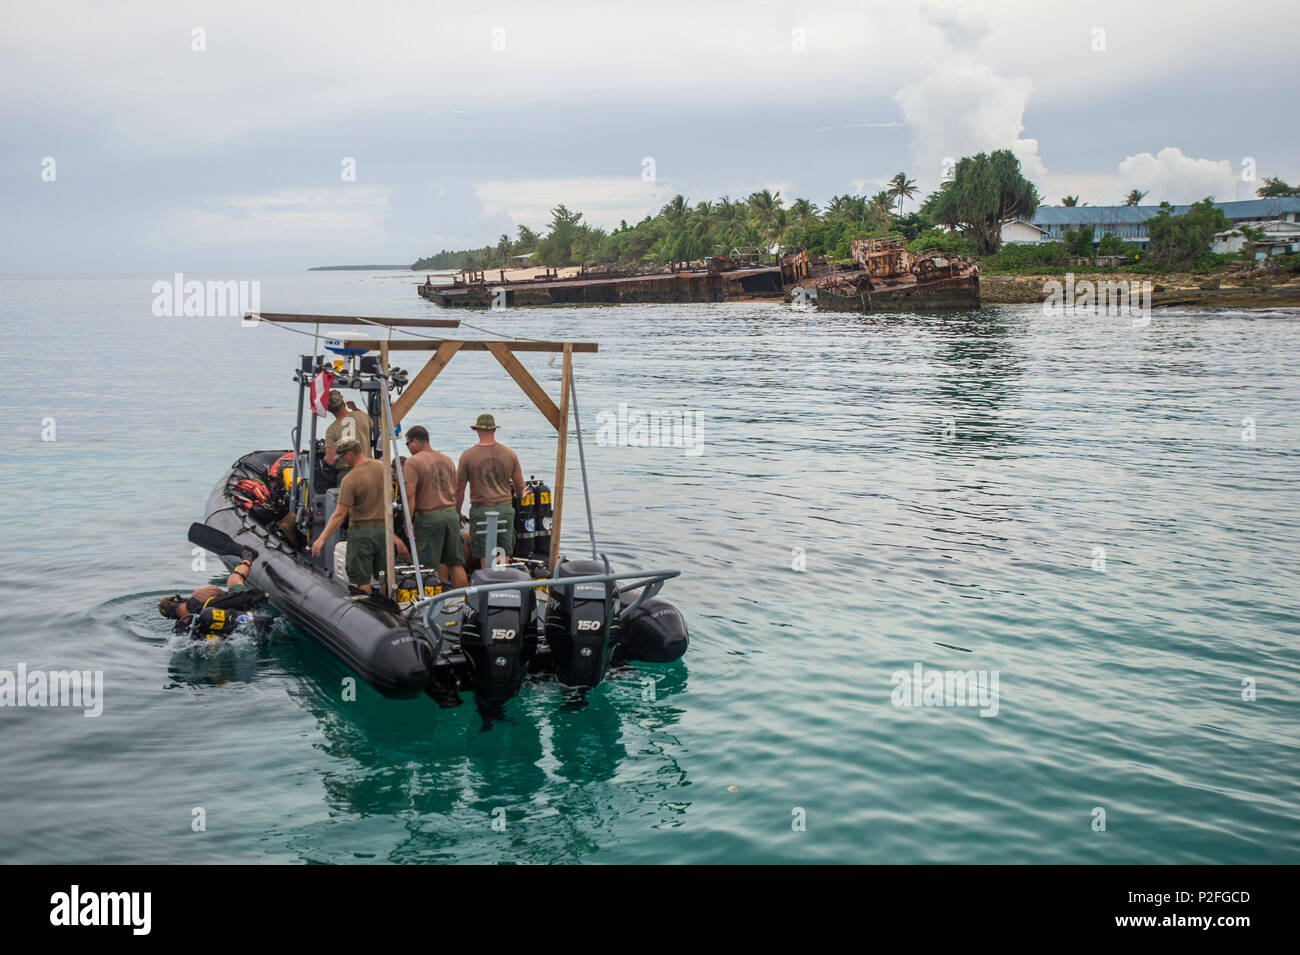 Members of Underwater Construction Team (UCT) 2 begin diving operations in Kwajalein, Marshal Islands, while participating in Valiant Shield (VS) Sep. 16, 2016.  VS is a biennial, U.S. Air Force, Navy and Marine Corps exercise held in and around Guam, focusing on real-world proficiency in sustaining joint forces at sea, in the air, on land and in cyberspace. (U.S. Navy Combat Camera Photo by Mass Communication Specialist 2nd Class Daniel Rolston/Released) Stock Photo